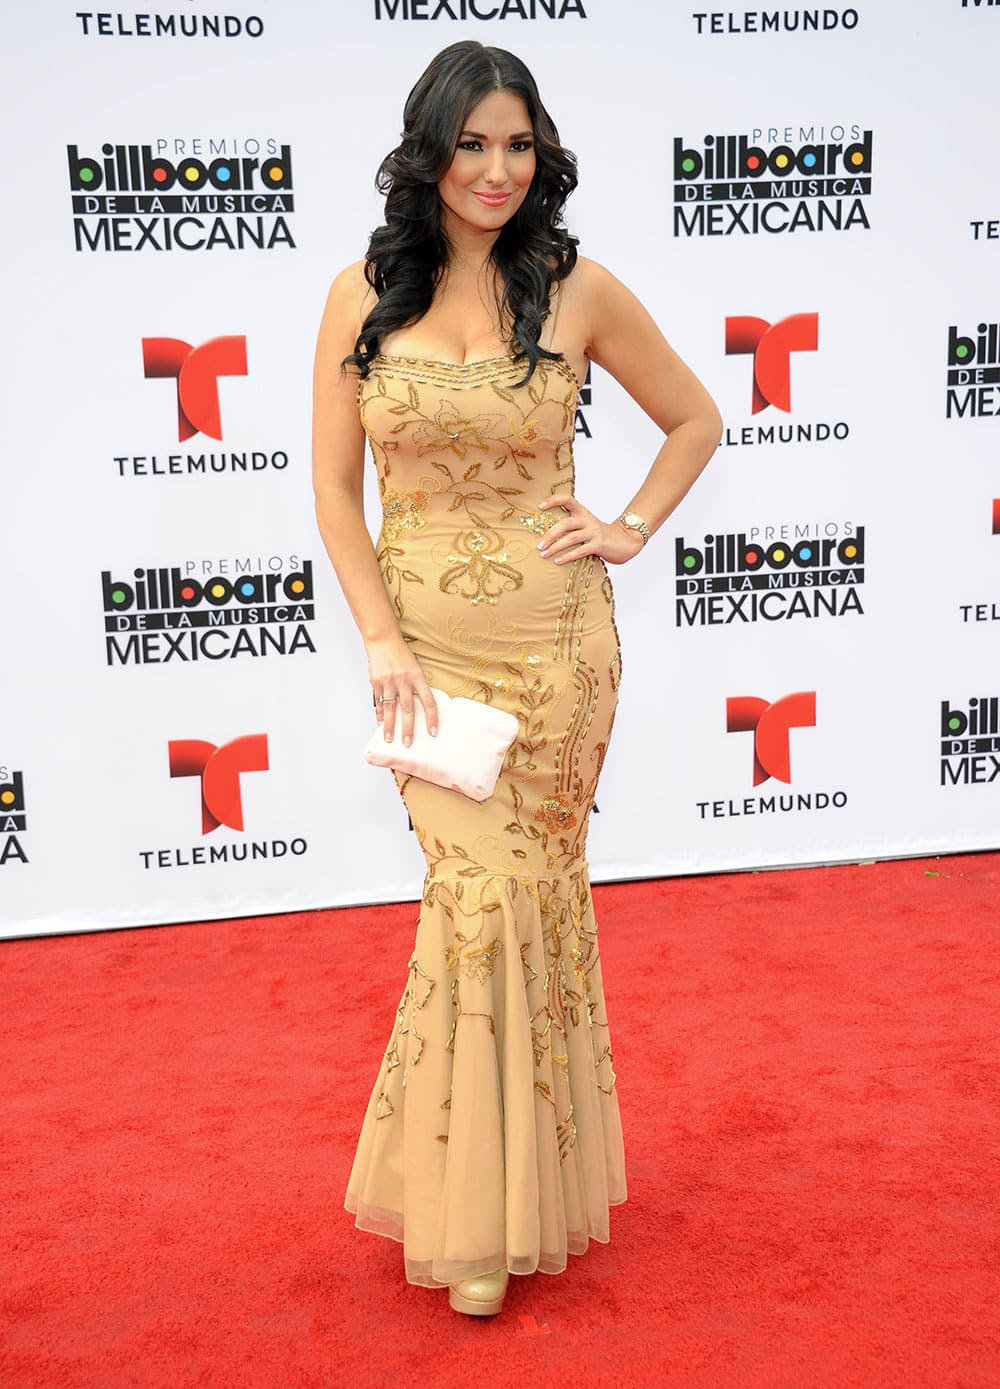 Estefania Iglesias arrives at the 3rd Annual Billboard Mexican Awards at The Dolby Theatre in Los Angeles.